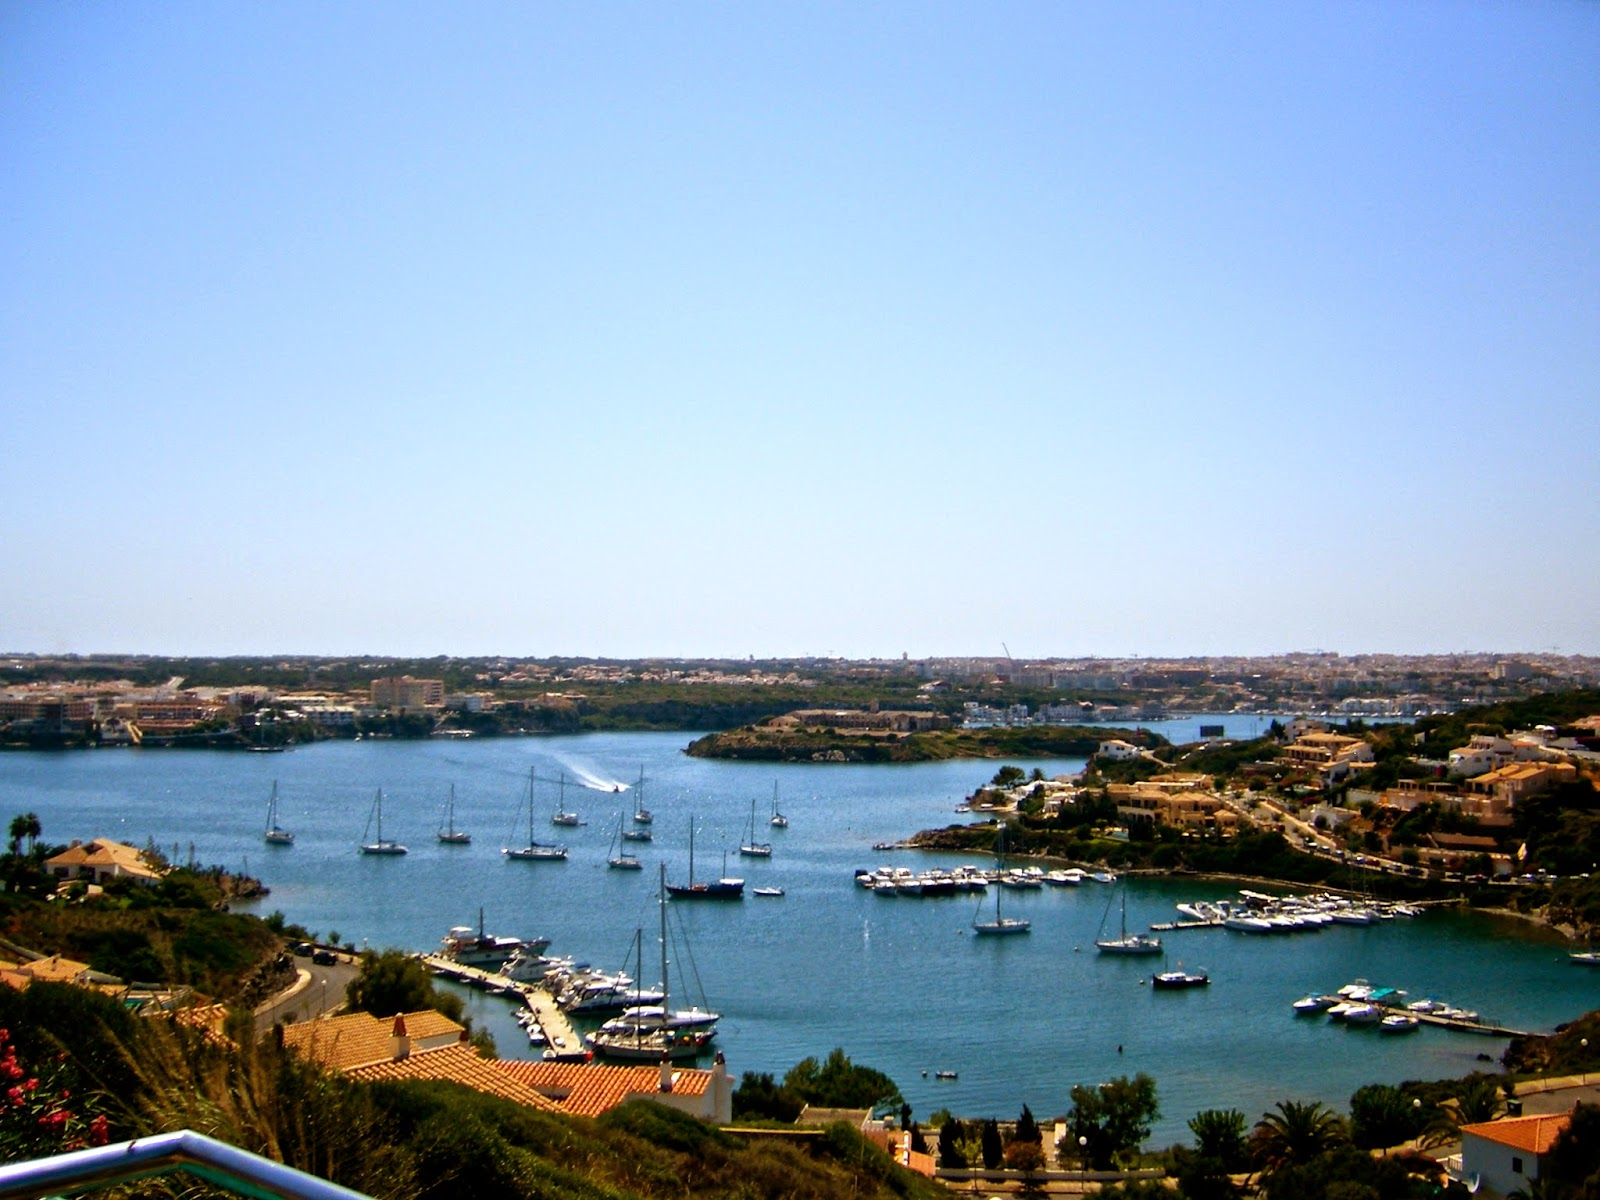 Travel Inspiration | Menorca, Spain | view overlooking Mahon harbour with boats